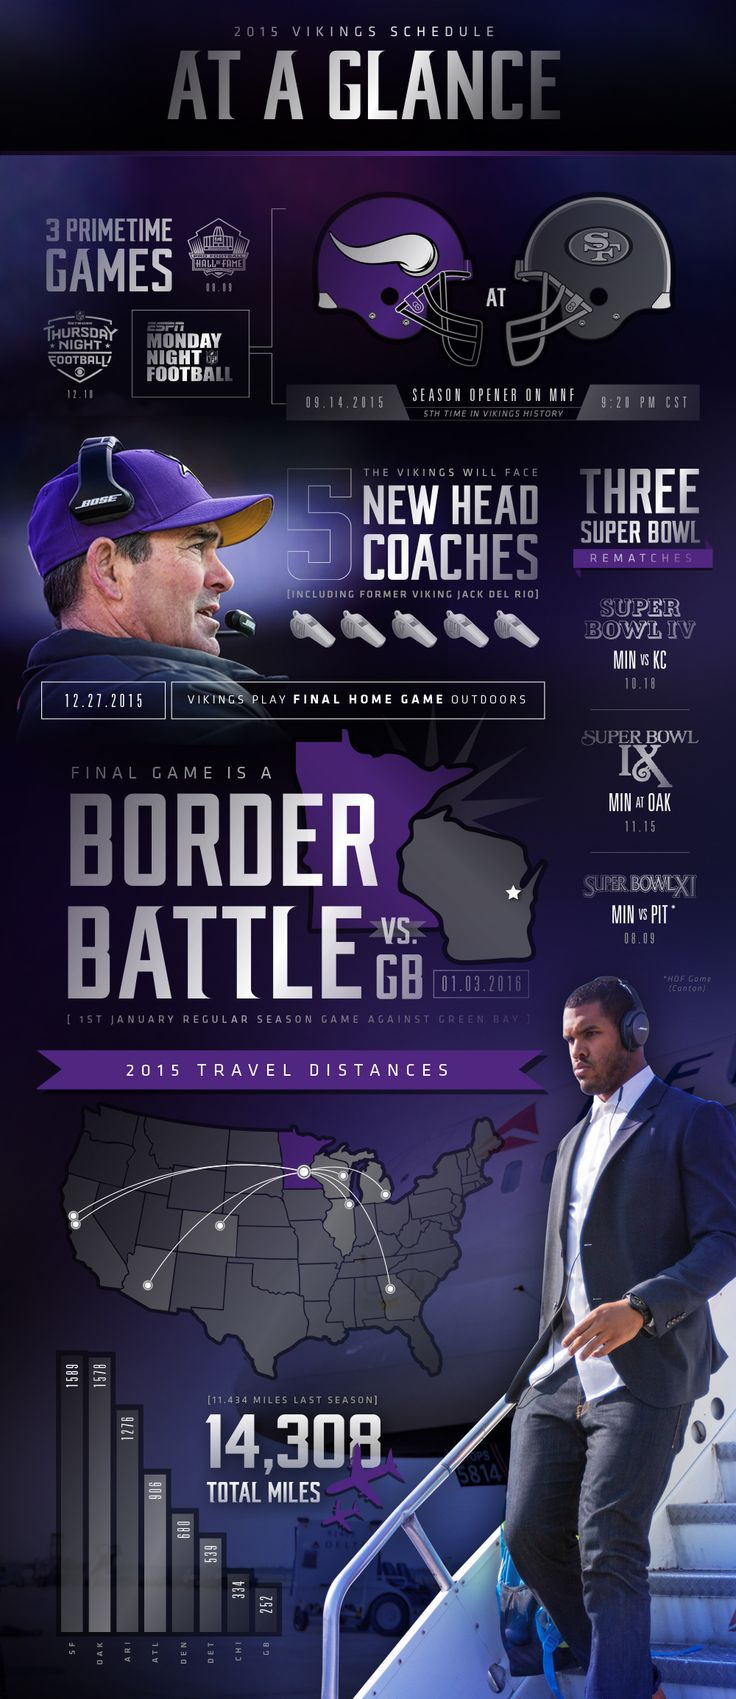 2015 Vikings Schedule 'At a Glance' Infographic on Behance